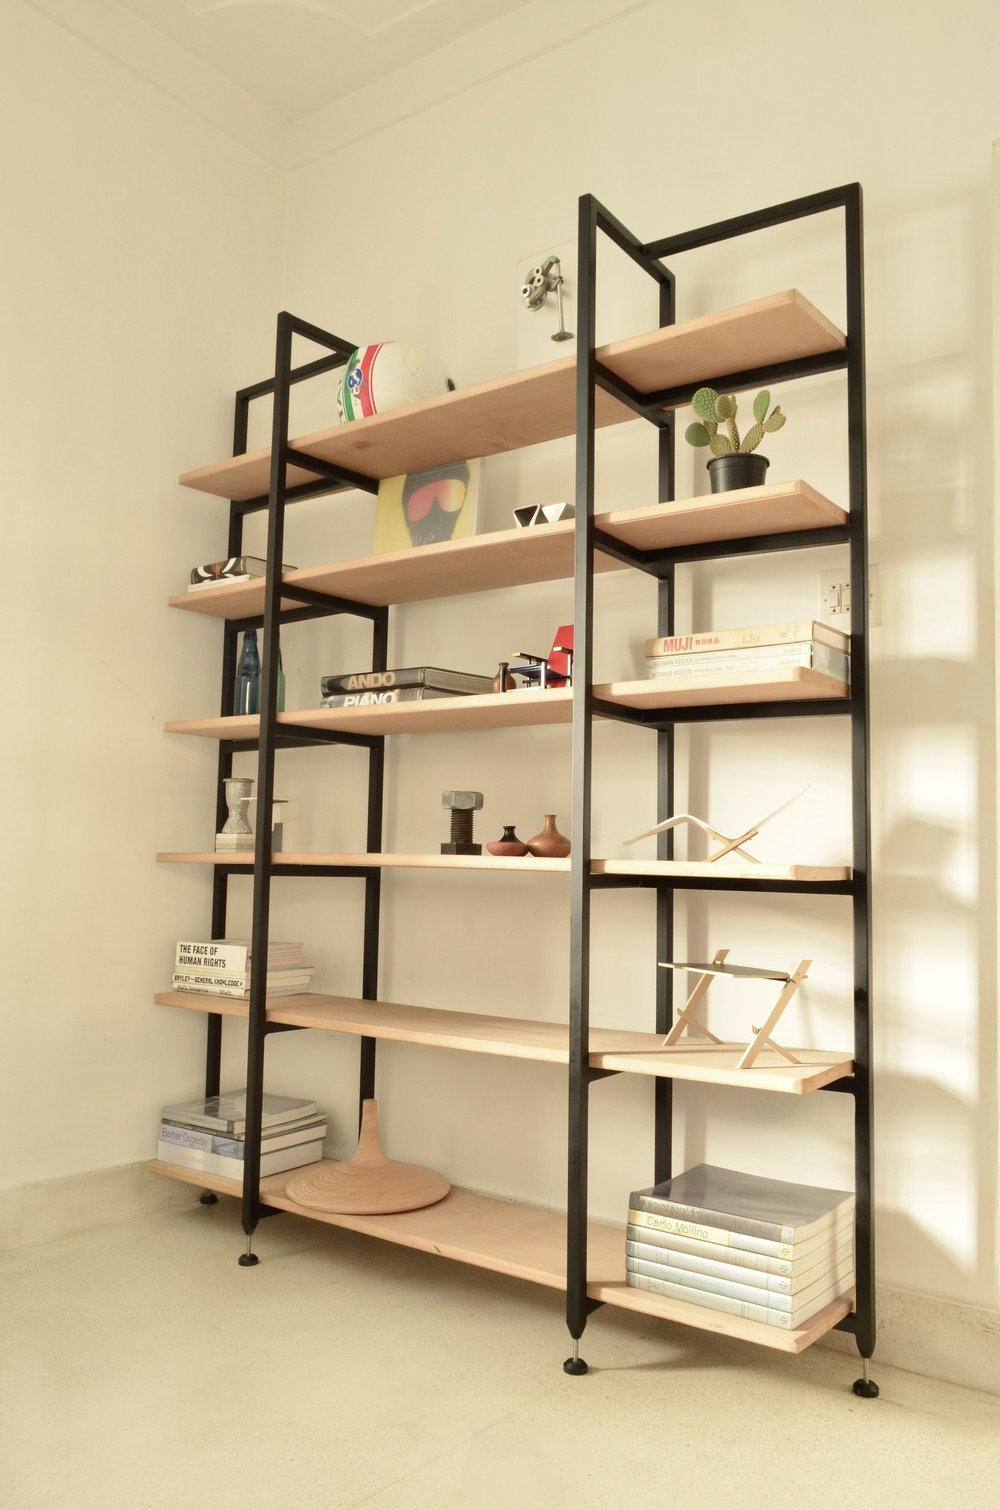 SHELFIE BOOKCASE (5) - Copy.jpg